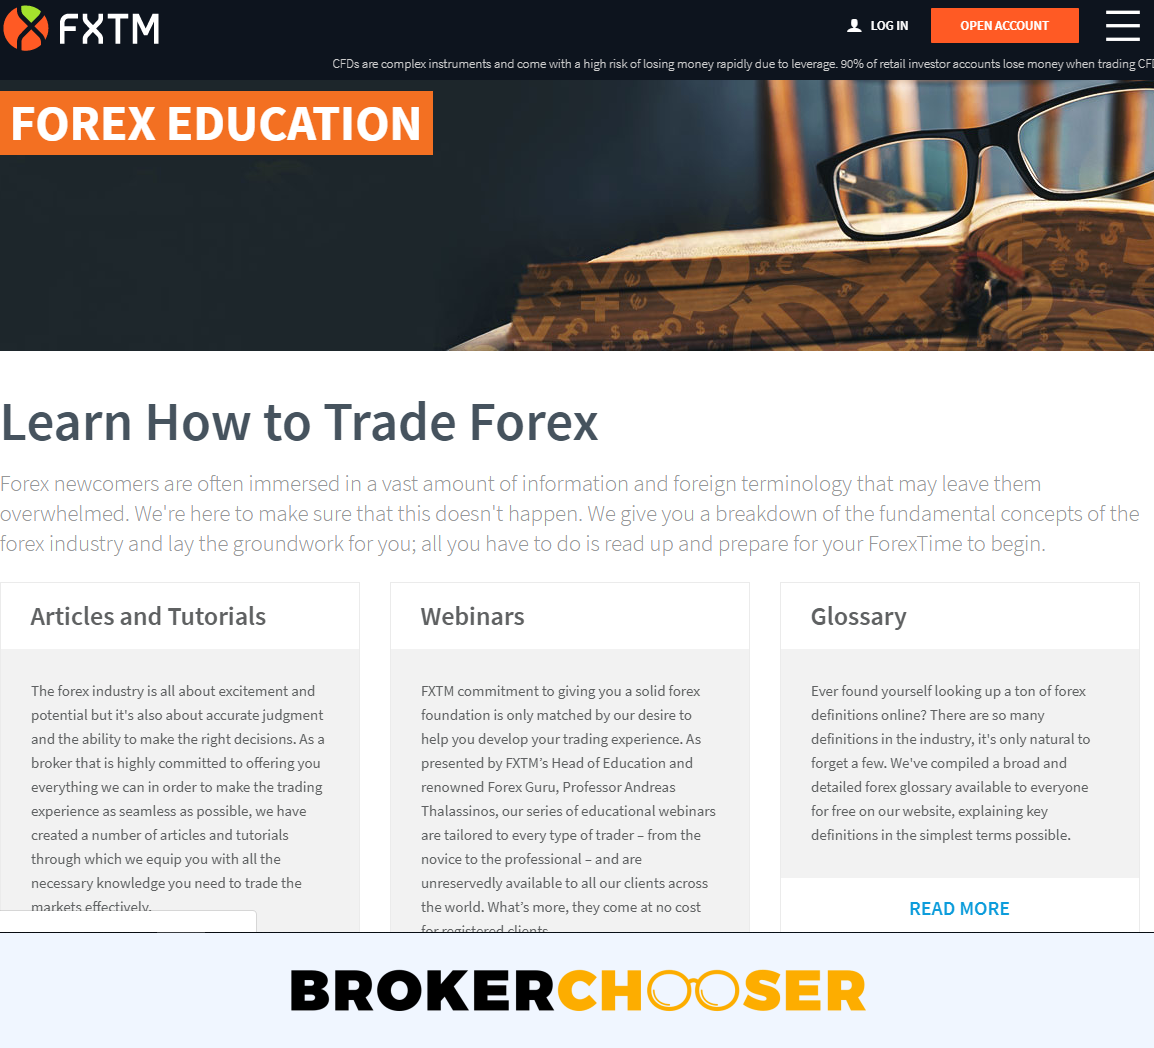 FXTM Review 2019 - Pros and Cons Uncovered